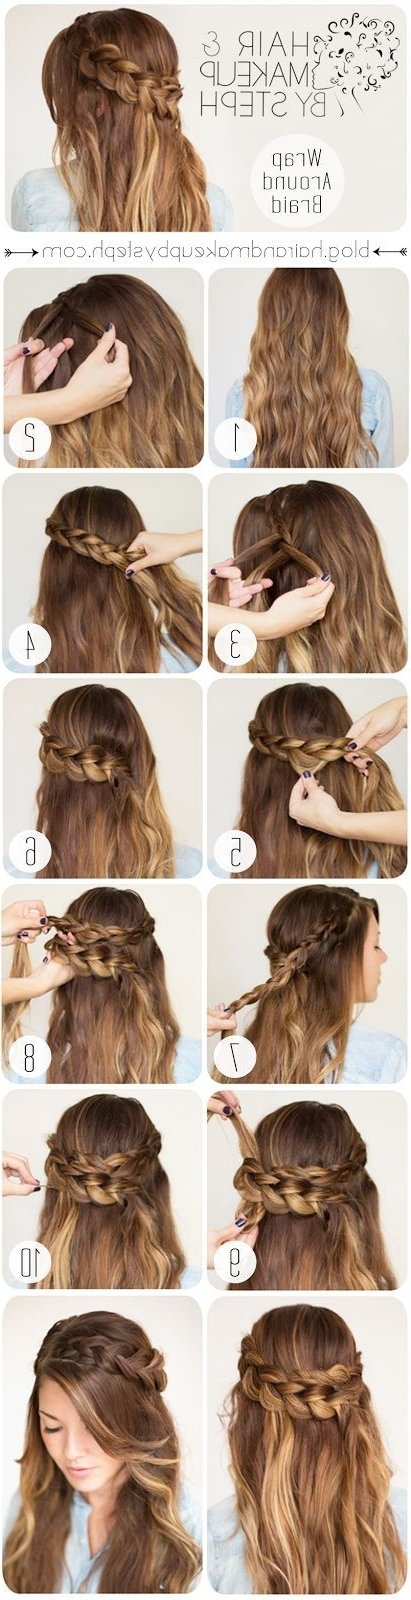 21 Tutorials For Styling Wrap Around Braids – Pretty Designs For Double Braided Wrap Around Ponytail Hairstyles (View 14 of 25)